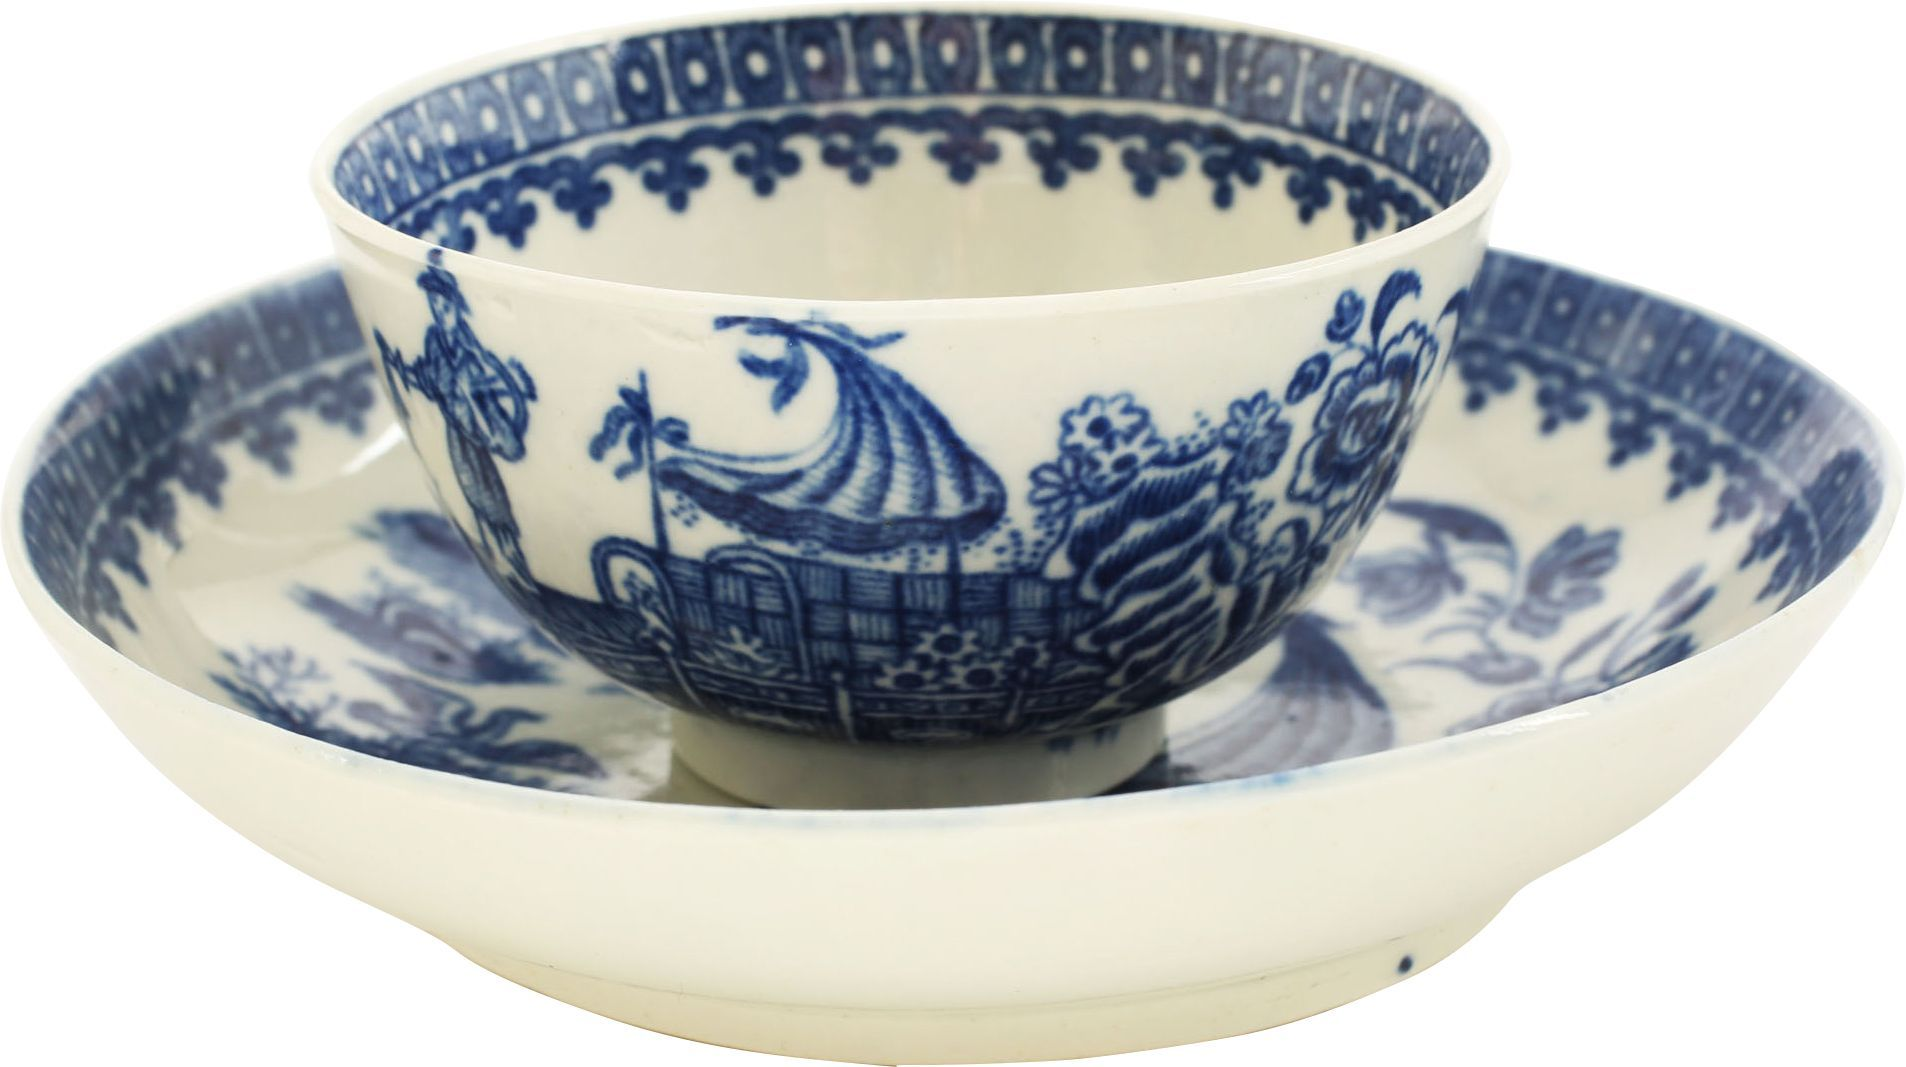 FIRST PERIOD WORCESTER TEA BOWL AND UNDER BOWL - Fagan Arms